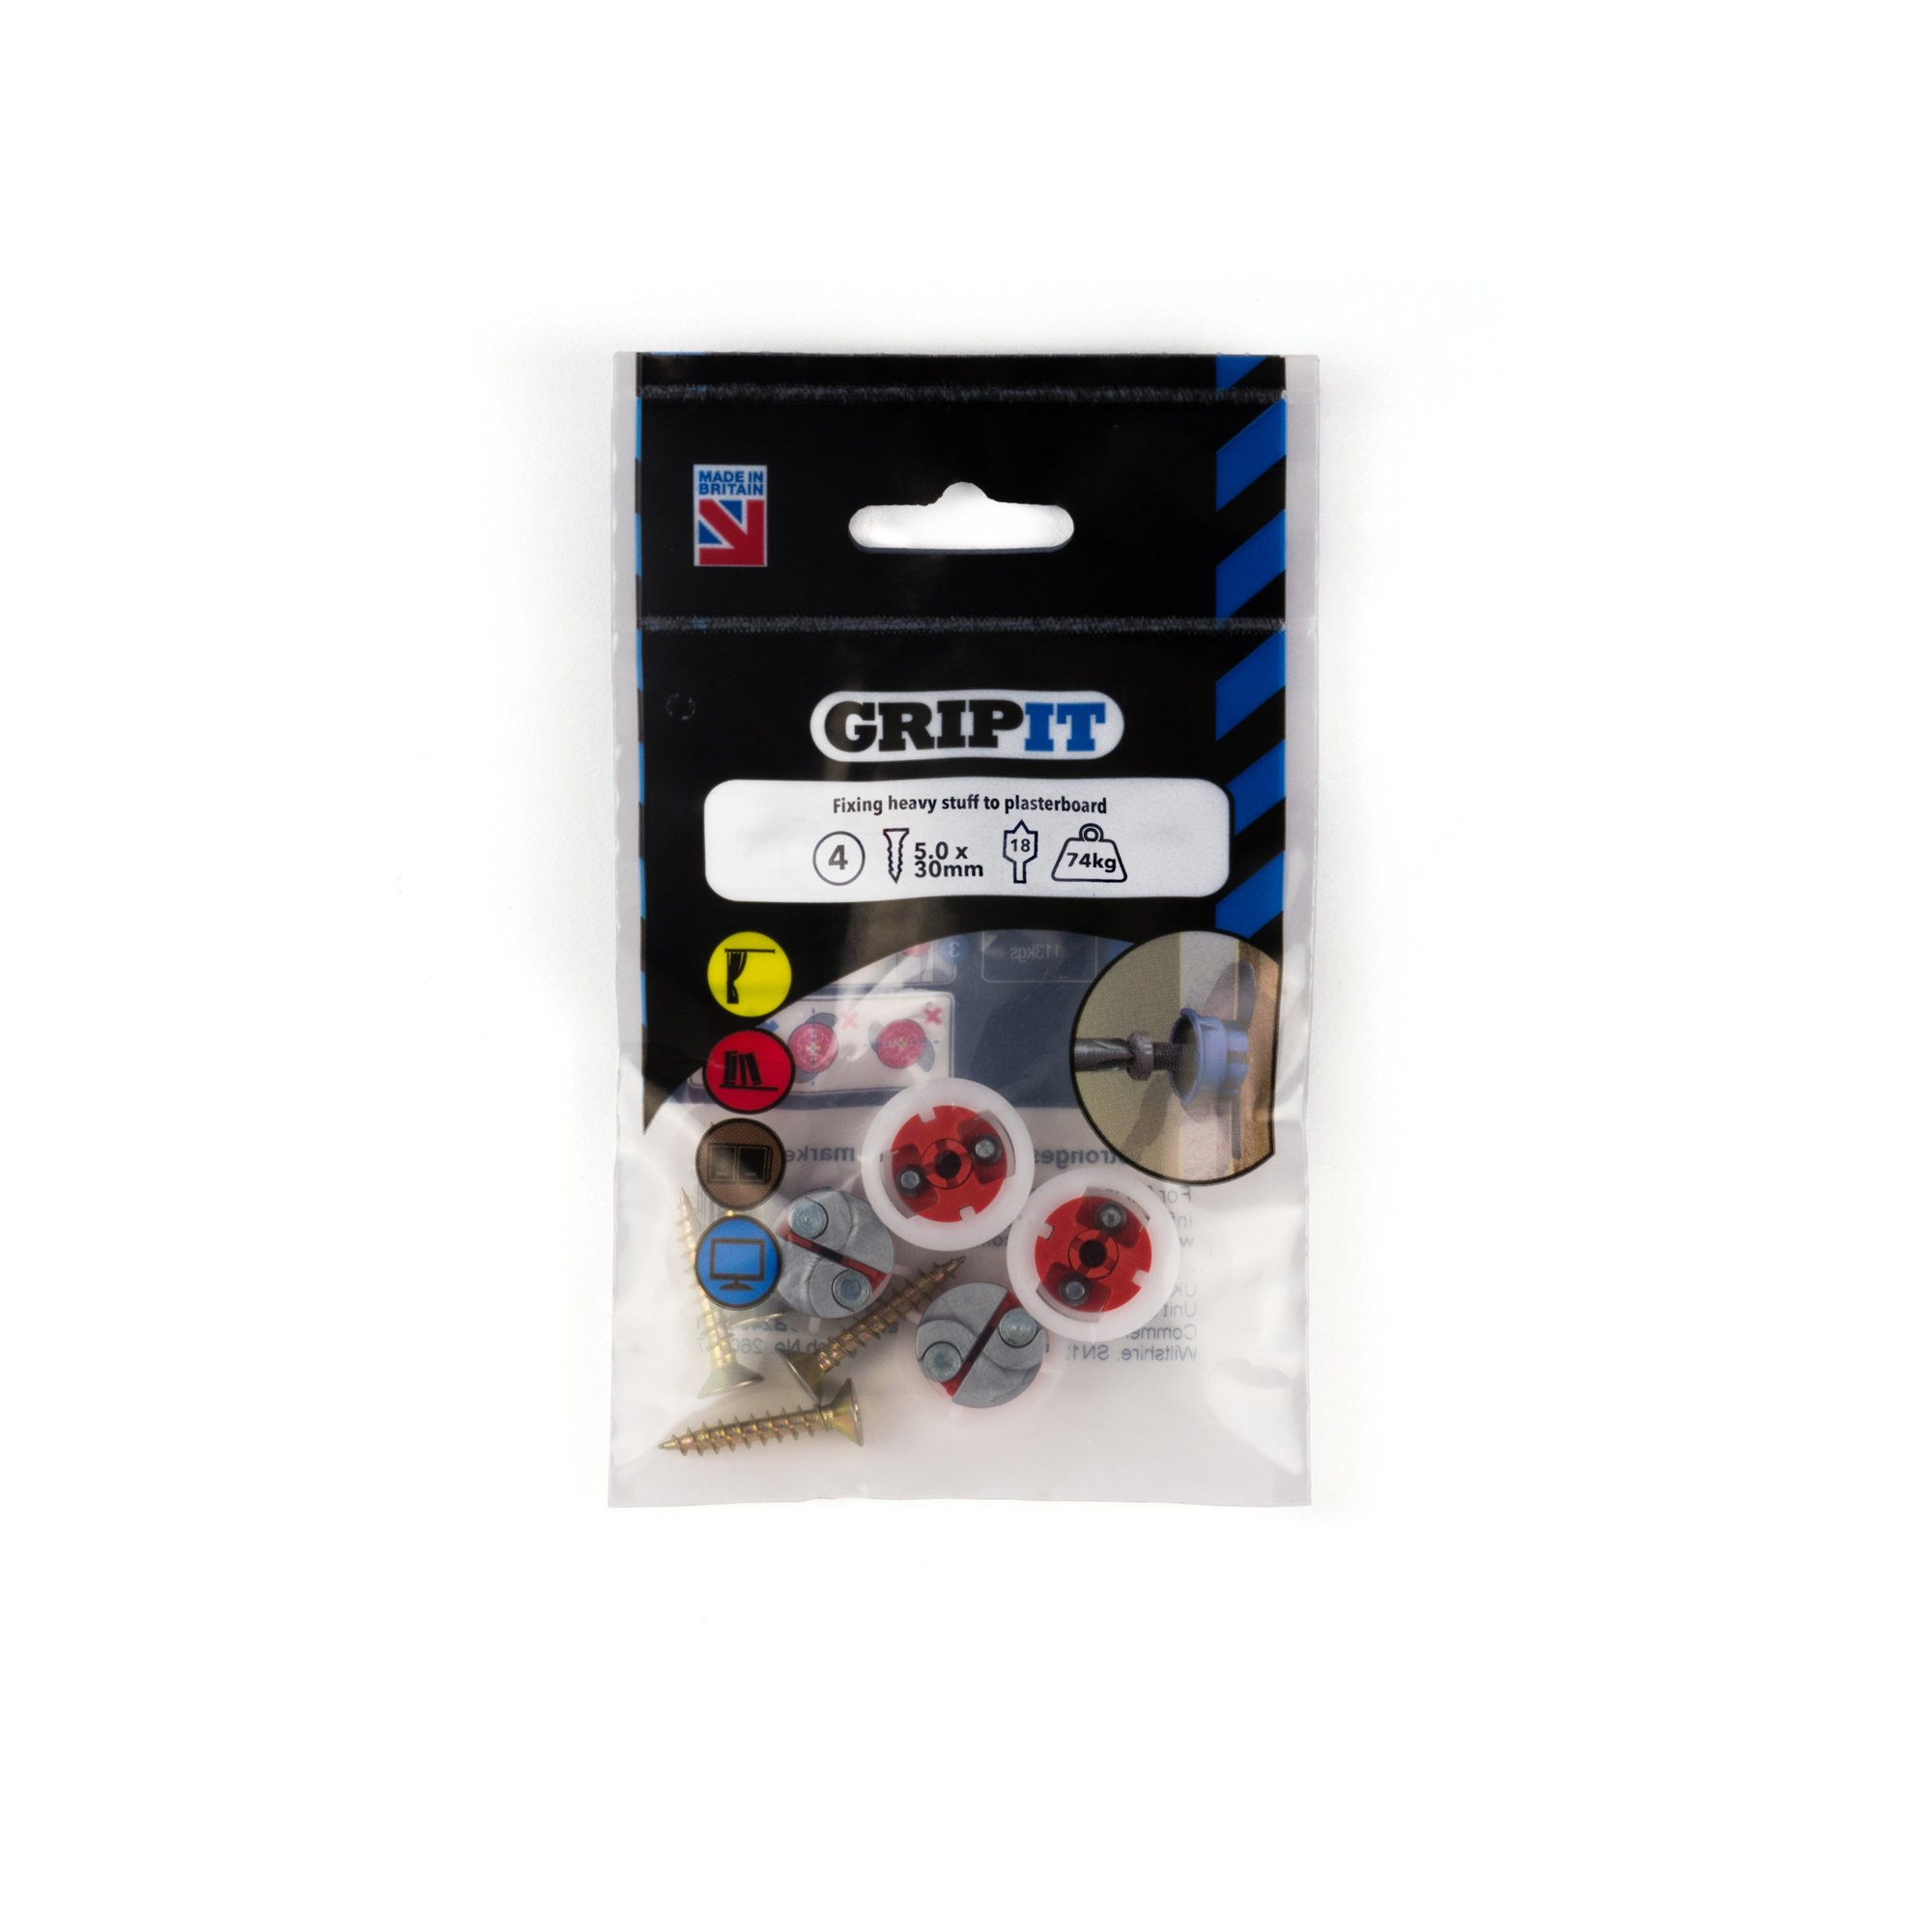 Gripit Plasterboard Fixings Red (Pack of 4) Holds Up to 71kg - 182-254